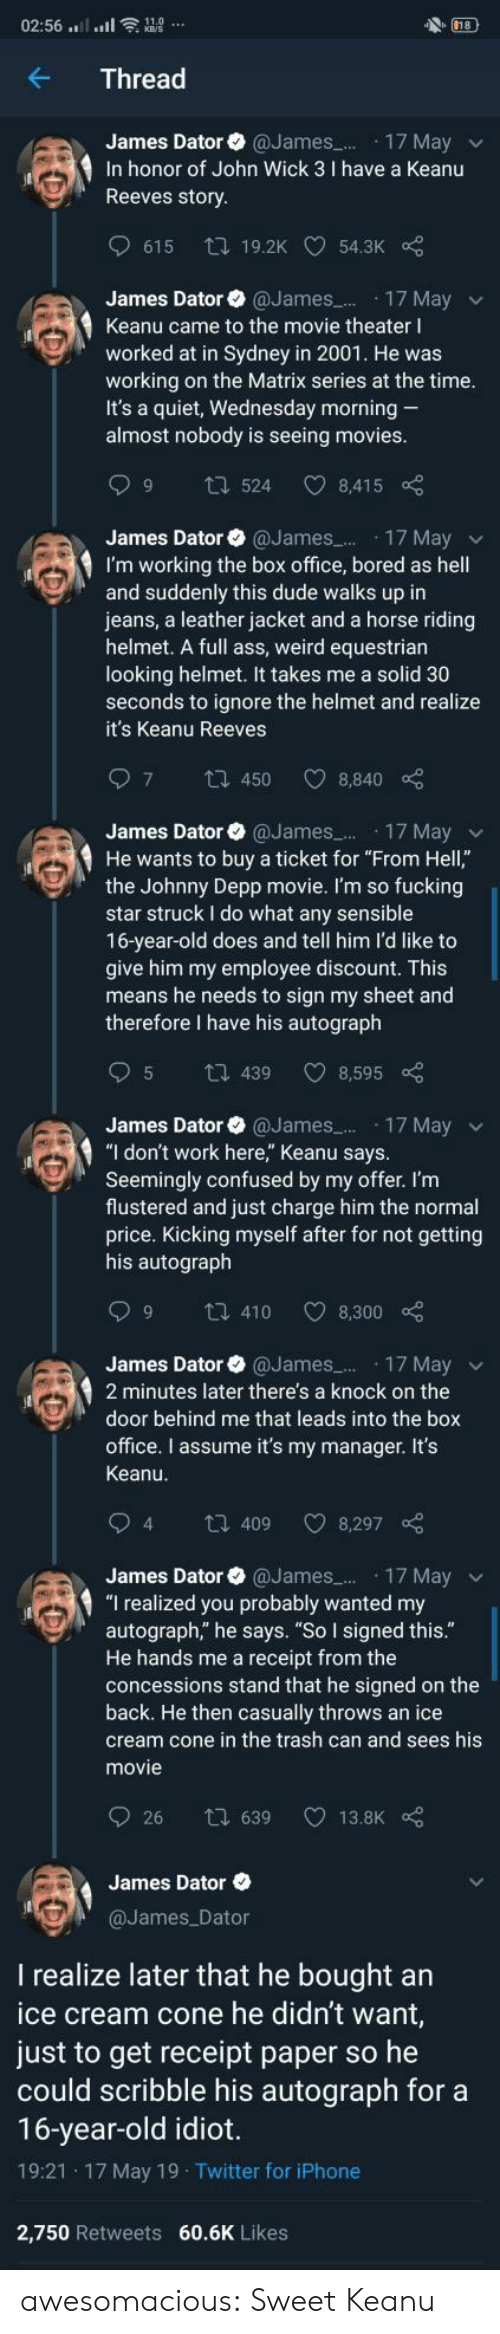 "Ass, Bored, and Confused: 18  02:56 ....ll  Thread  James Dator @James.. 17 May  In honor of John Wick 3 I have a Keanu  Reeves story  615  ti 19.2K 54.3K  James Dator @James..  17 May  Keanu came to the movie theater I  worked at in Sydney in 2001. He was  working on the Matrix series at the time.  It's a quiet, Wednesday morning  almost nobody is seeing movies.  6 C  t524  8,415  James Dator @James..  17 May  I'm working the box office, bored as hell  and suddenly this dude walks up in  jeans, a leather jacket and a horse riding  helmet. A full ass, weird equestrian  looking helmet. It takes me a solid 30  seconds to ignore the helmet and realize  it's Keanu Reeves  7  1450  8,840  James Dator @James 17 Mayv  He wants to buy a ticket for ""From Hell,""  the Johnny Depp movie. I'm so fucking  star struck I do what any sensible  16-year-old does and tell him l'd like to  give him my employee discount. This  means he needs to sign my sheet and  therefore I have his autograph  5  8,595  t439  James Dator @James. 17 May  ""I don't work here,"" Keanu says.  Seemingly confused by my offer. I'm  flustered and just charge him the normal  price. Kicking myself after for not getting  his autograph  9  8,300  t 410  James Dator @James..  17 May  2 minutes later there's a knock on the  door behind me that leads into the box  office. I assume it's my manager. It's  Keanu.  94  t 409  8,297  17 May  ""I realized you probably wanted my  autograph,"" he says. ""So I signed this.""  He hands me a receipt from the  concessions stand that he signed on the  back. He then casually throws an ice  James Dator  @James...  cream cone in the trash can and sees his  movie  26  t 639  13.8K  James Dator  @James Dator  realize later that he bought an  ice cream cone he didn't want,  just to get receipt paper so he  could scribble his autograph for a  16-year-old idiot.  19:21 17 May 19 Twitter for iPhone  2,750 Retweets 60.6K Likes awesomacious:  Sweet Keanu"